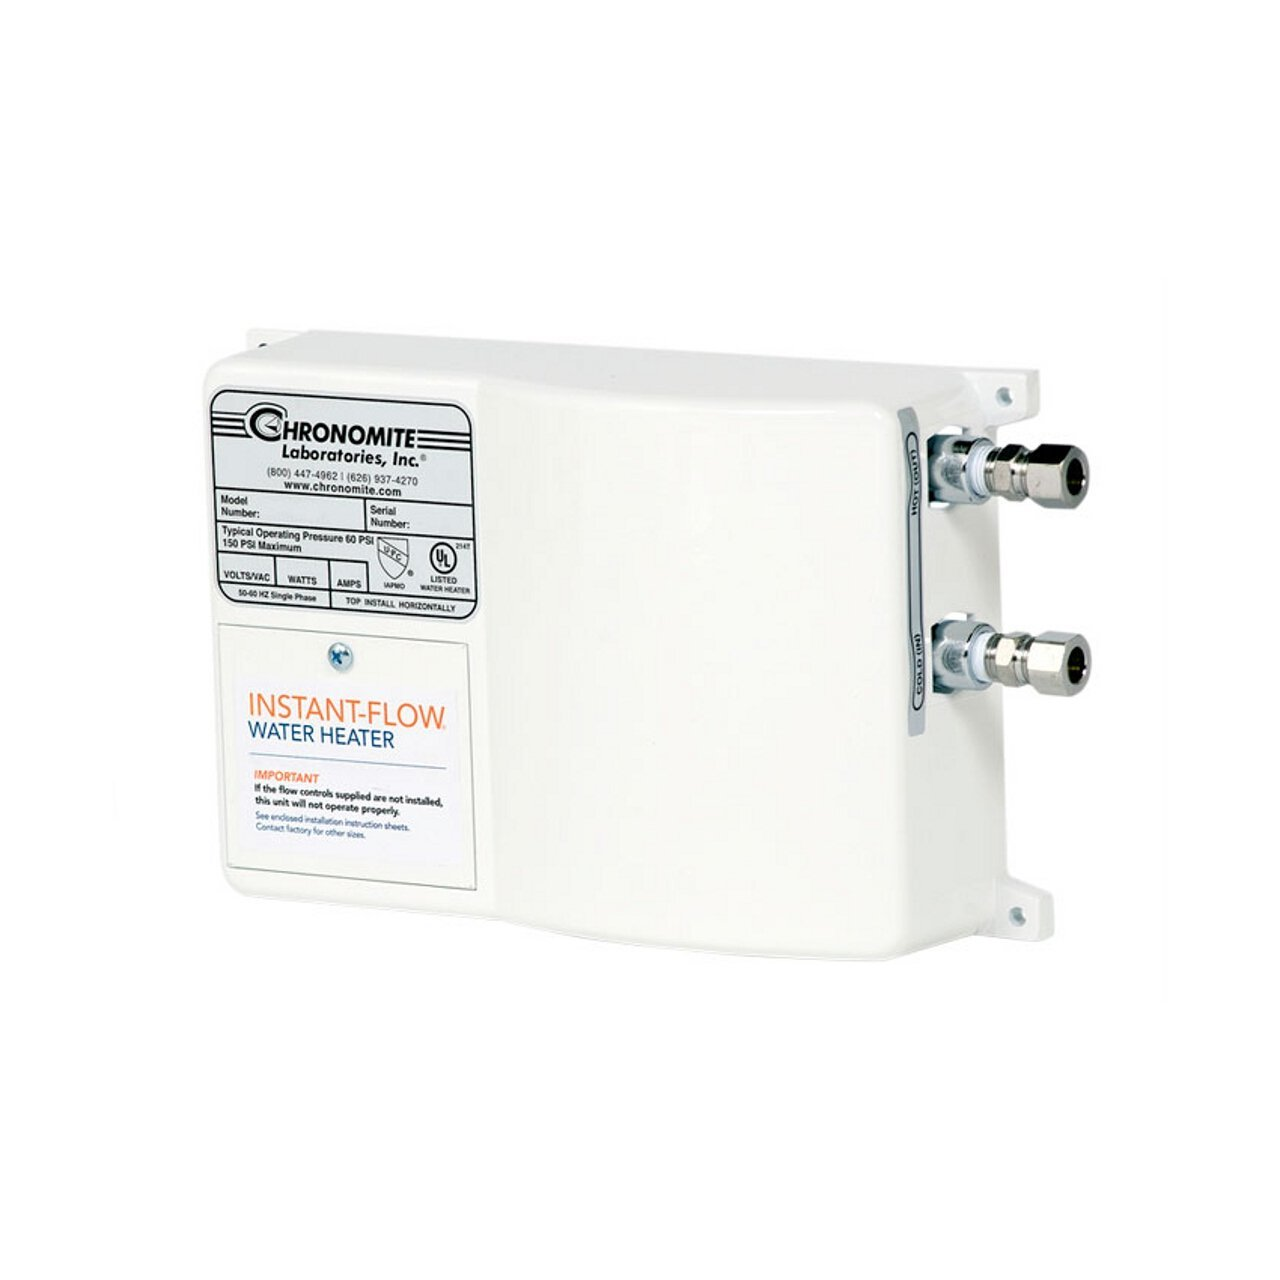 Chronomite SR-20L HTR 240-Volt Low Flow Tankless Water Heater